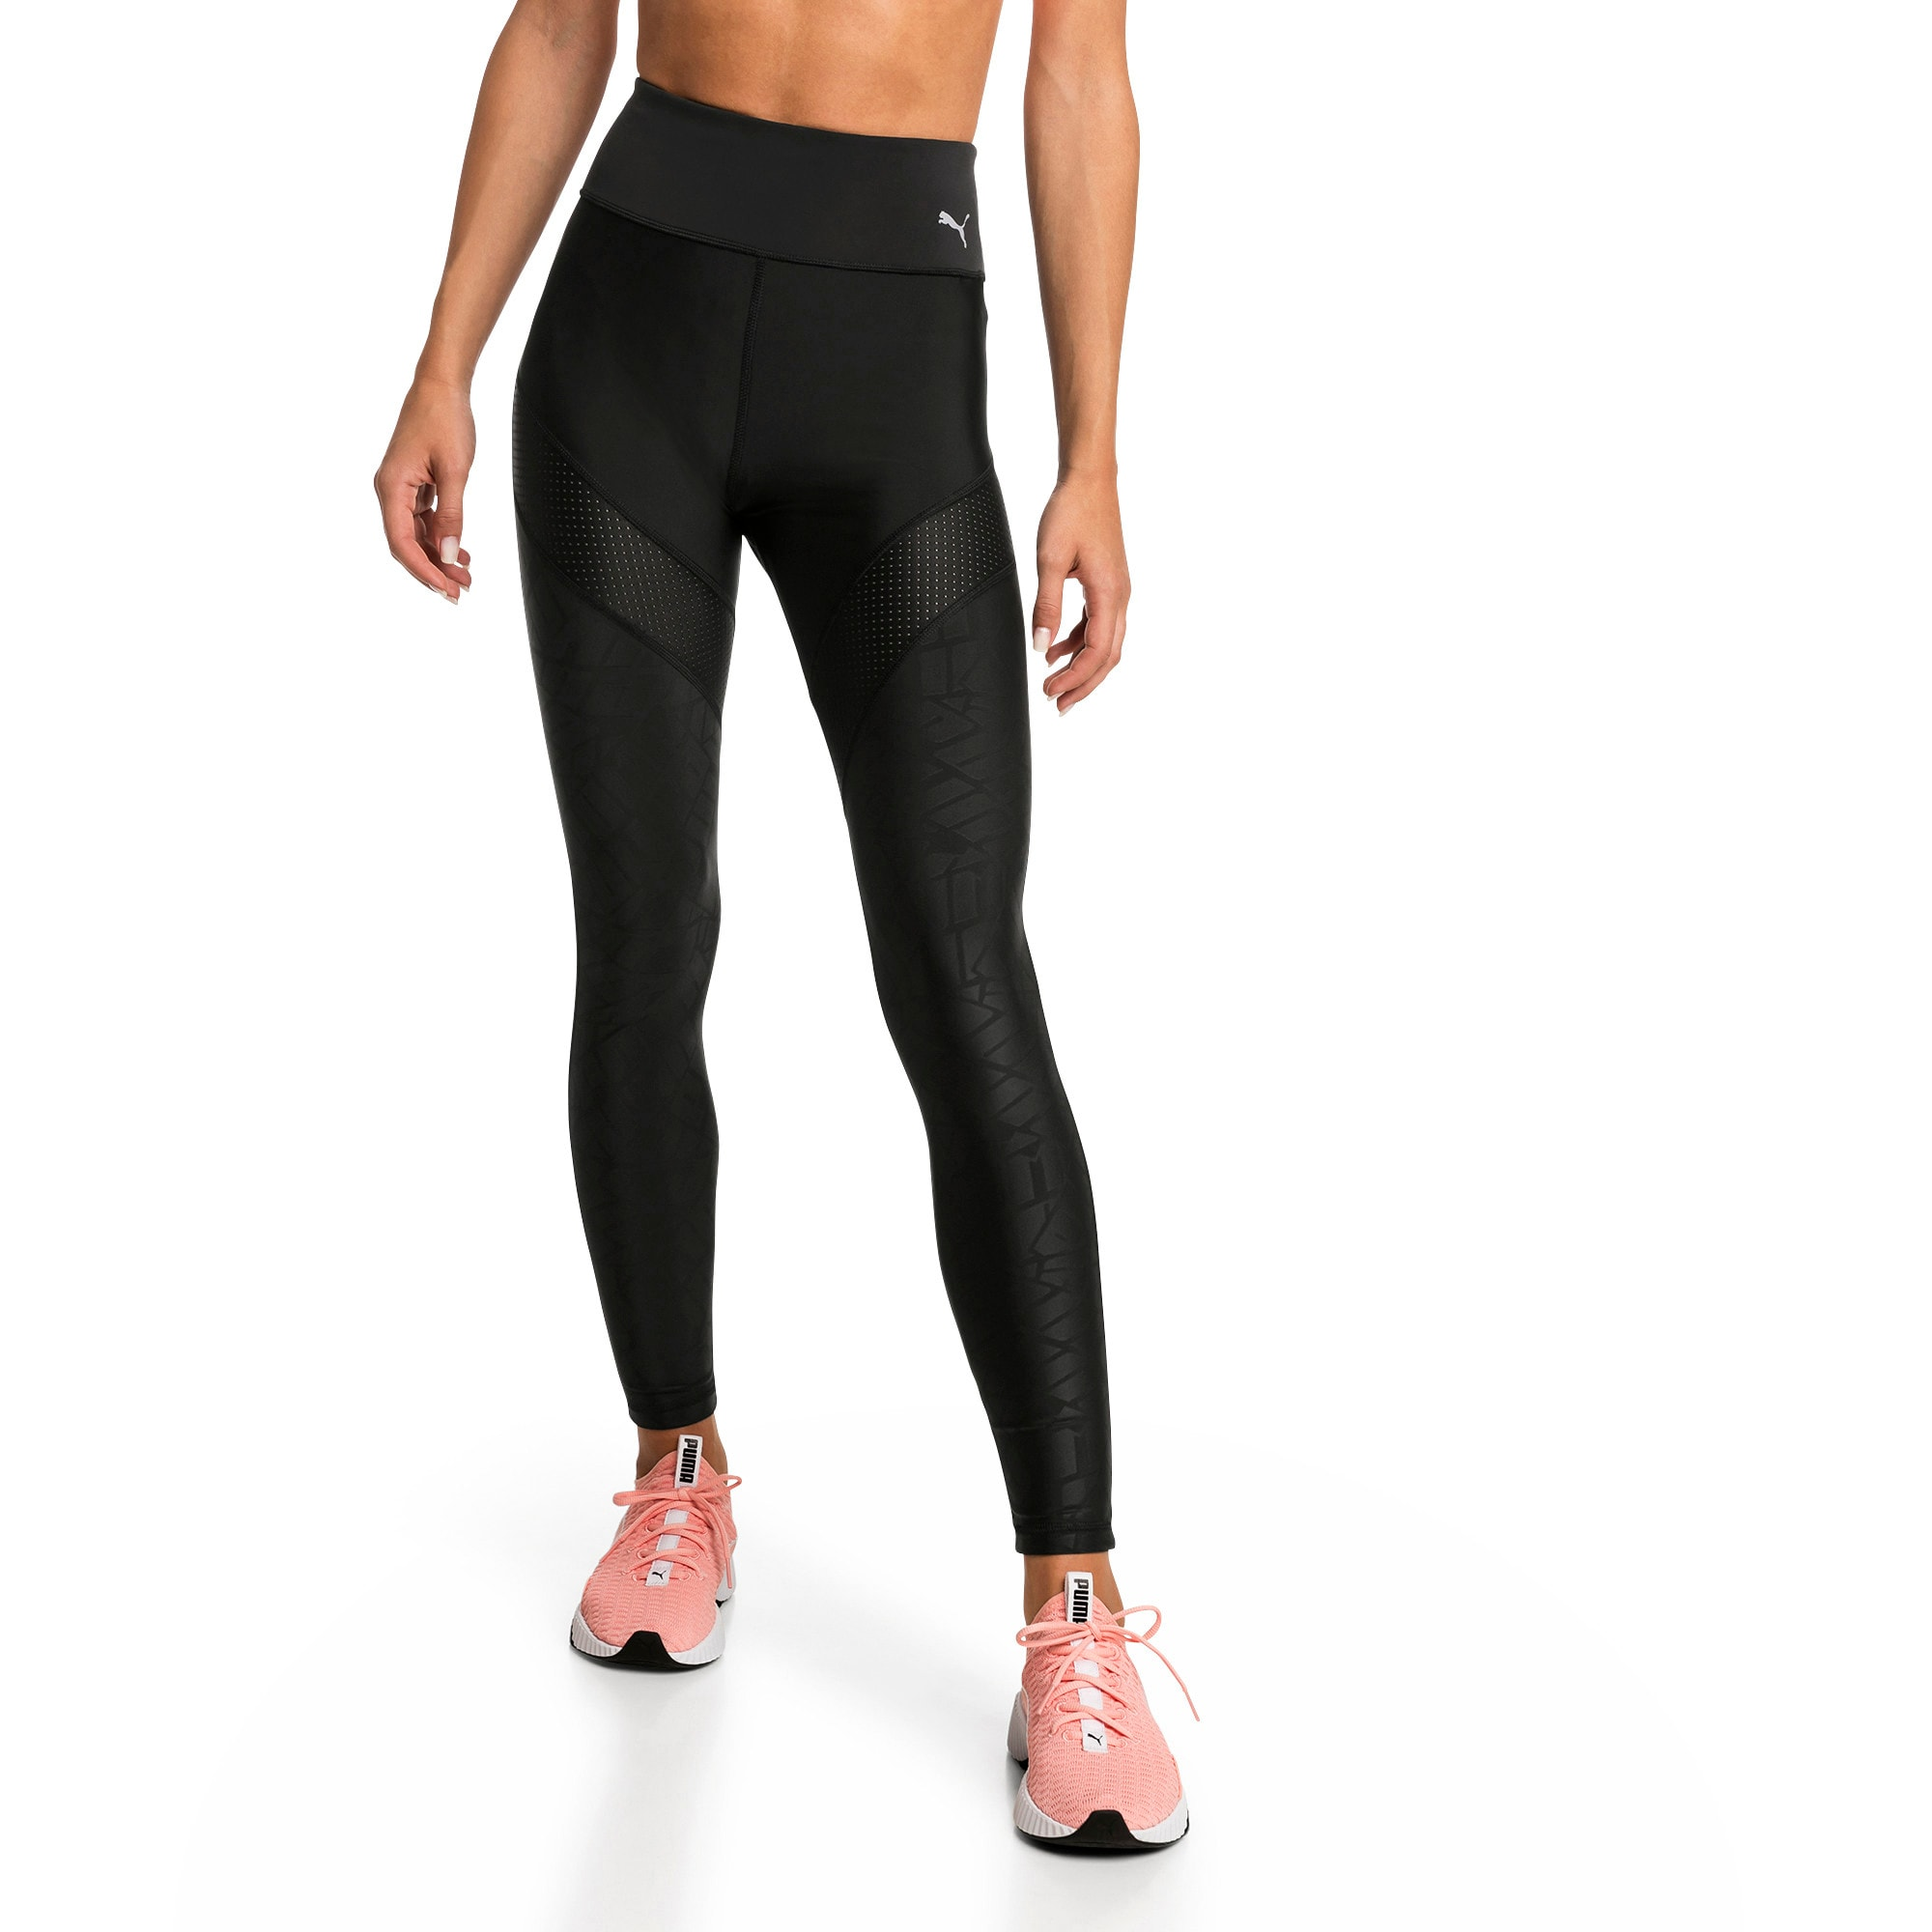 Thumbnail 1 of Pantalon de sport Show Off Training pour femme, Puma Black-AOP, medium